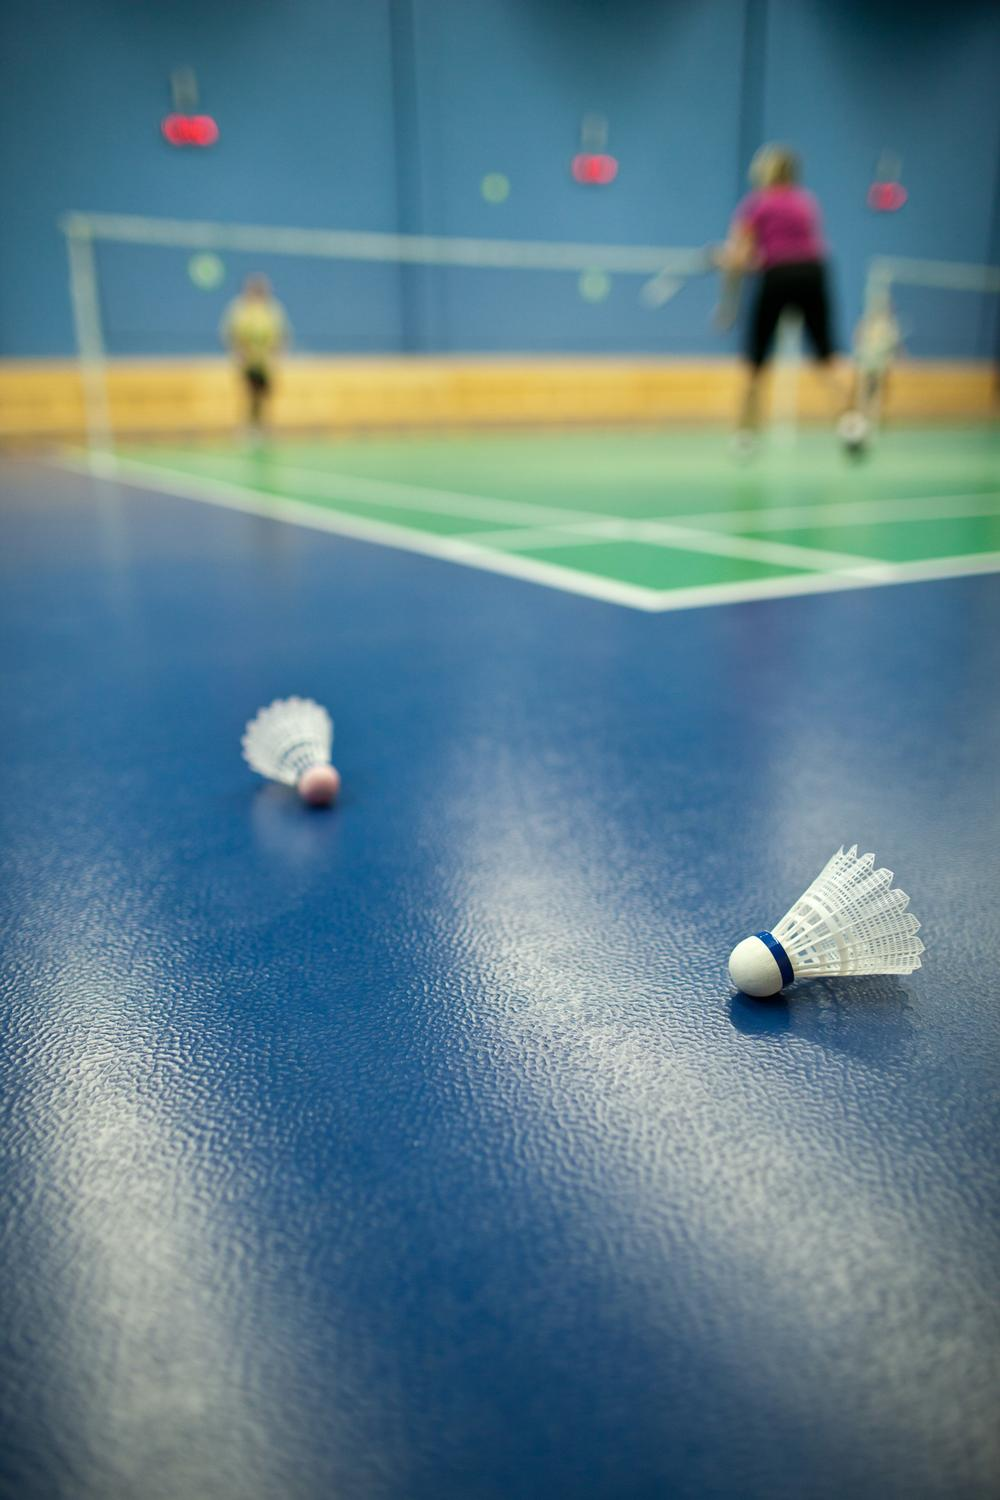 In the sports hall, aim for only one set-up and one pull-down per evening